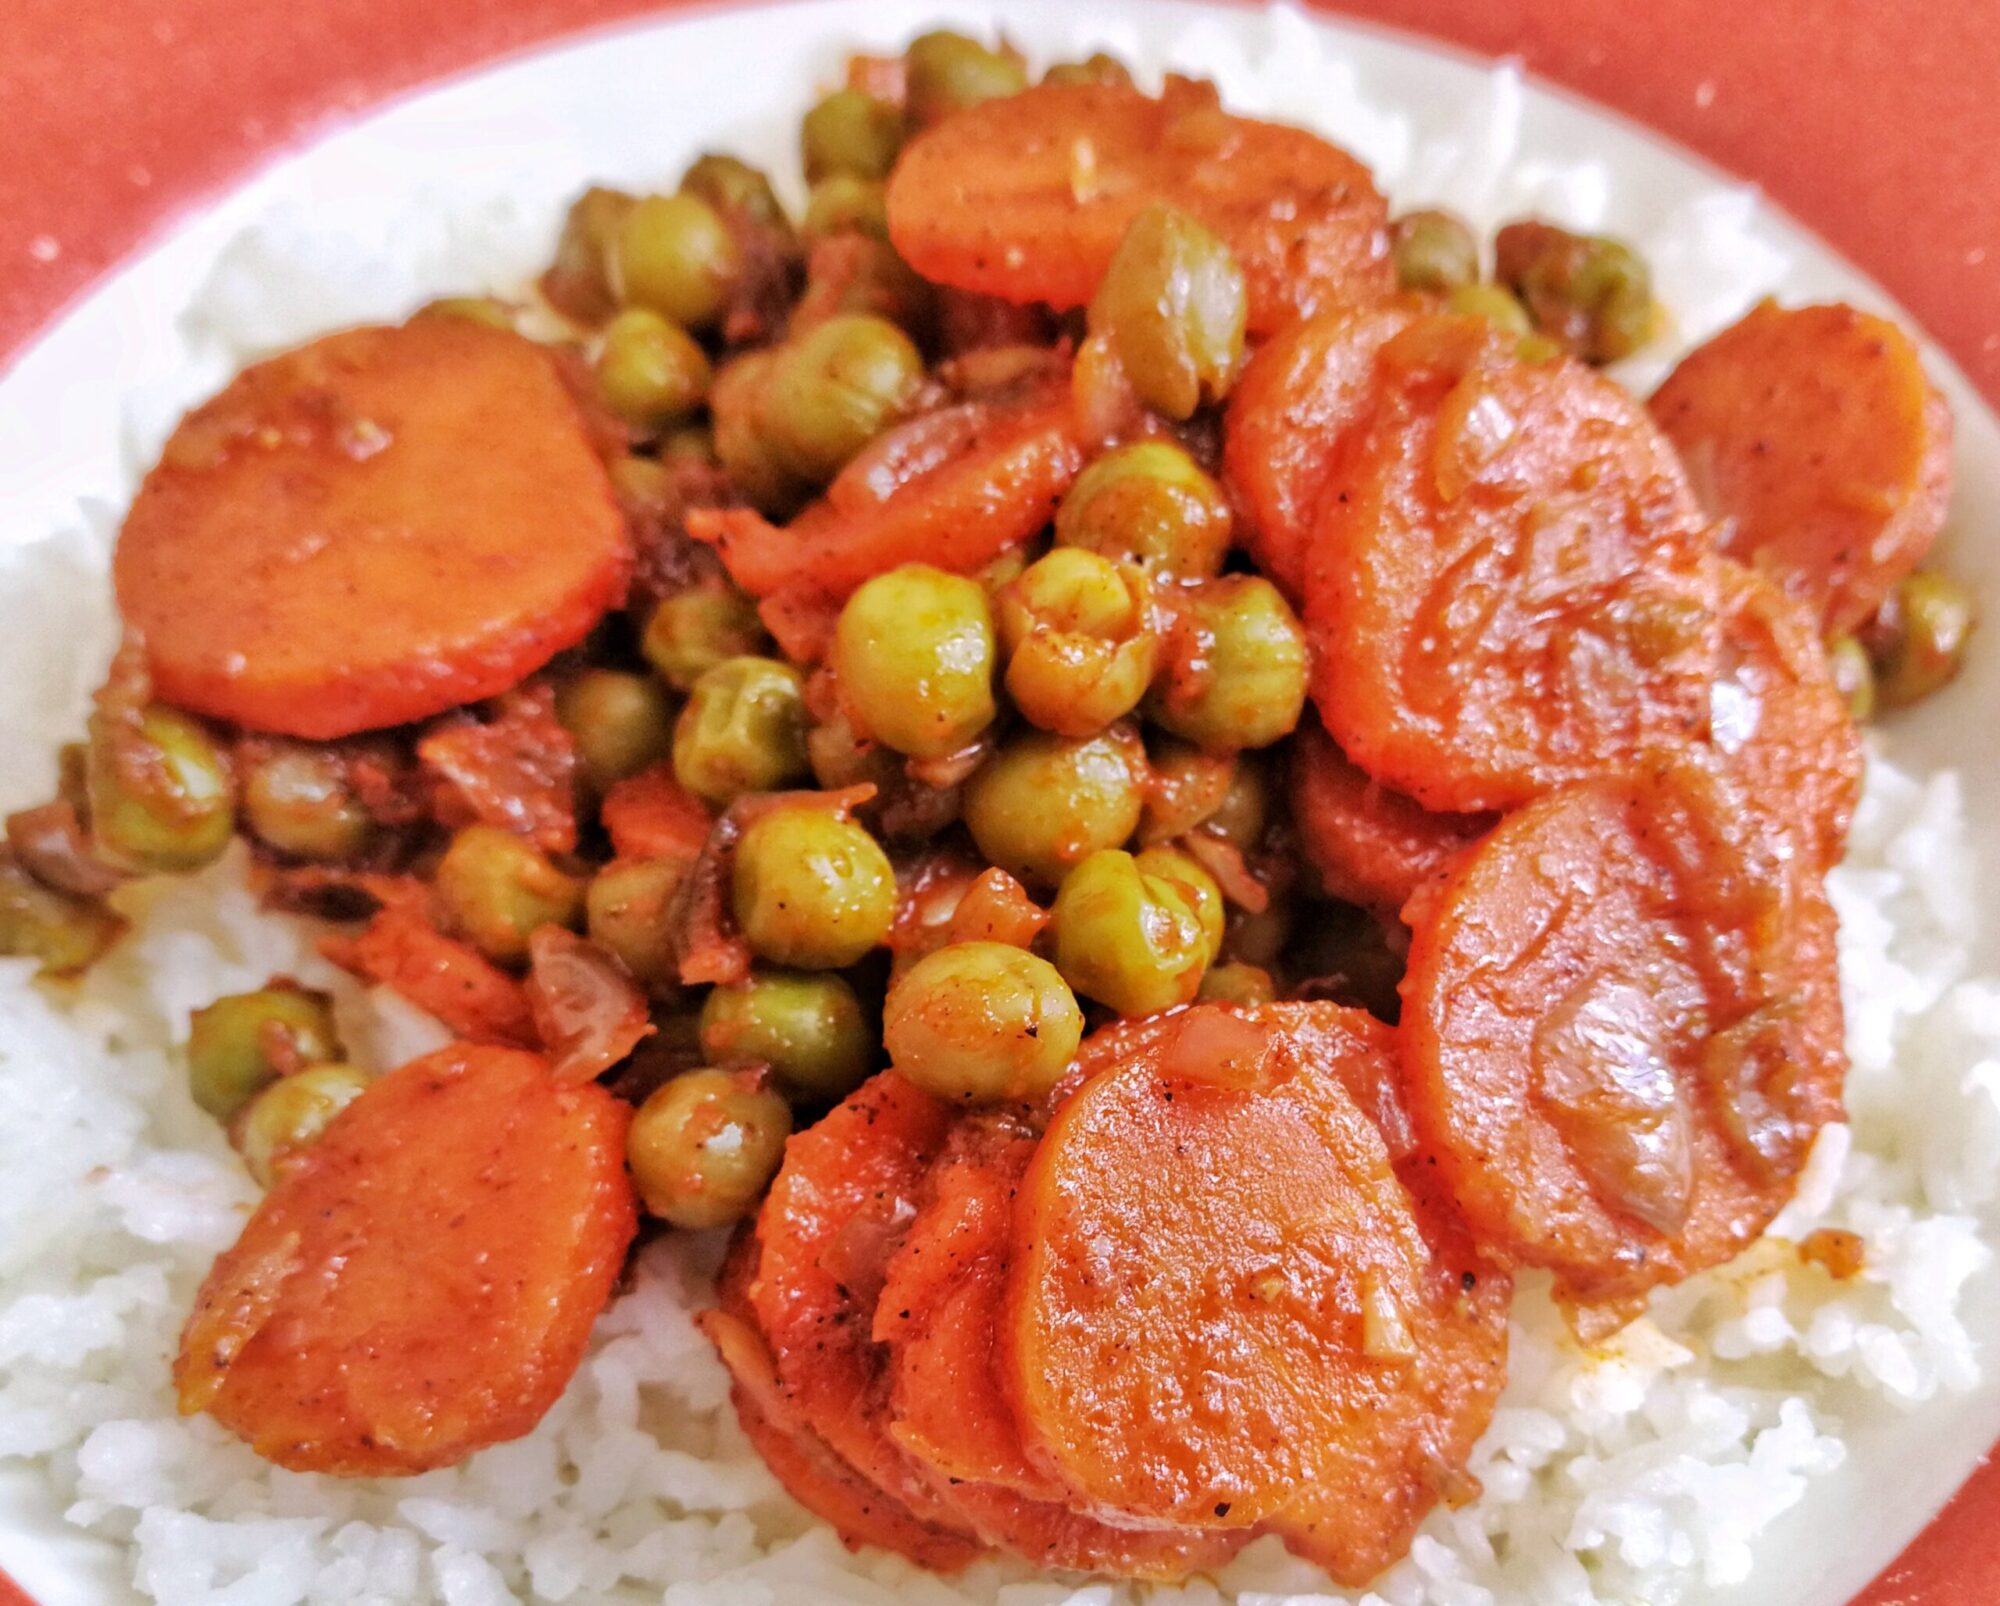 Peppery peas and carrots